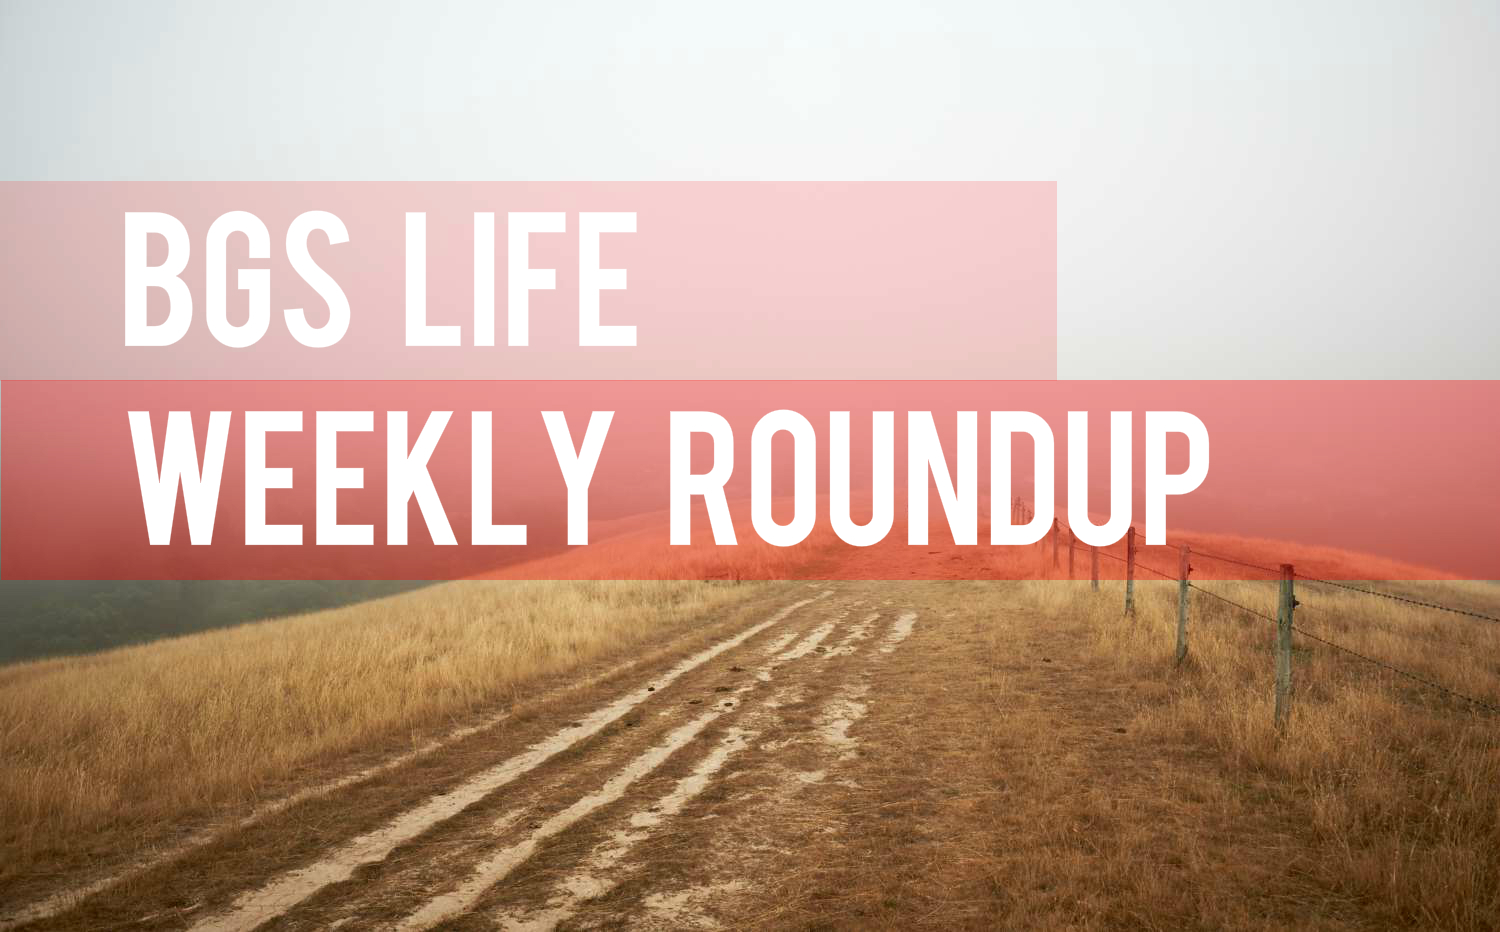 The BGS Life Weekly Roundup: Toasted Deities, Super Blood Moon Eclipse, Faux Shabby Chic and More